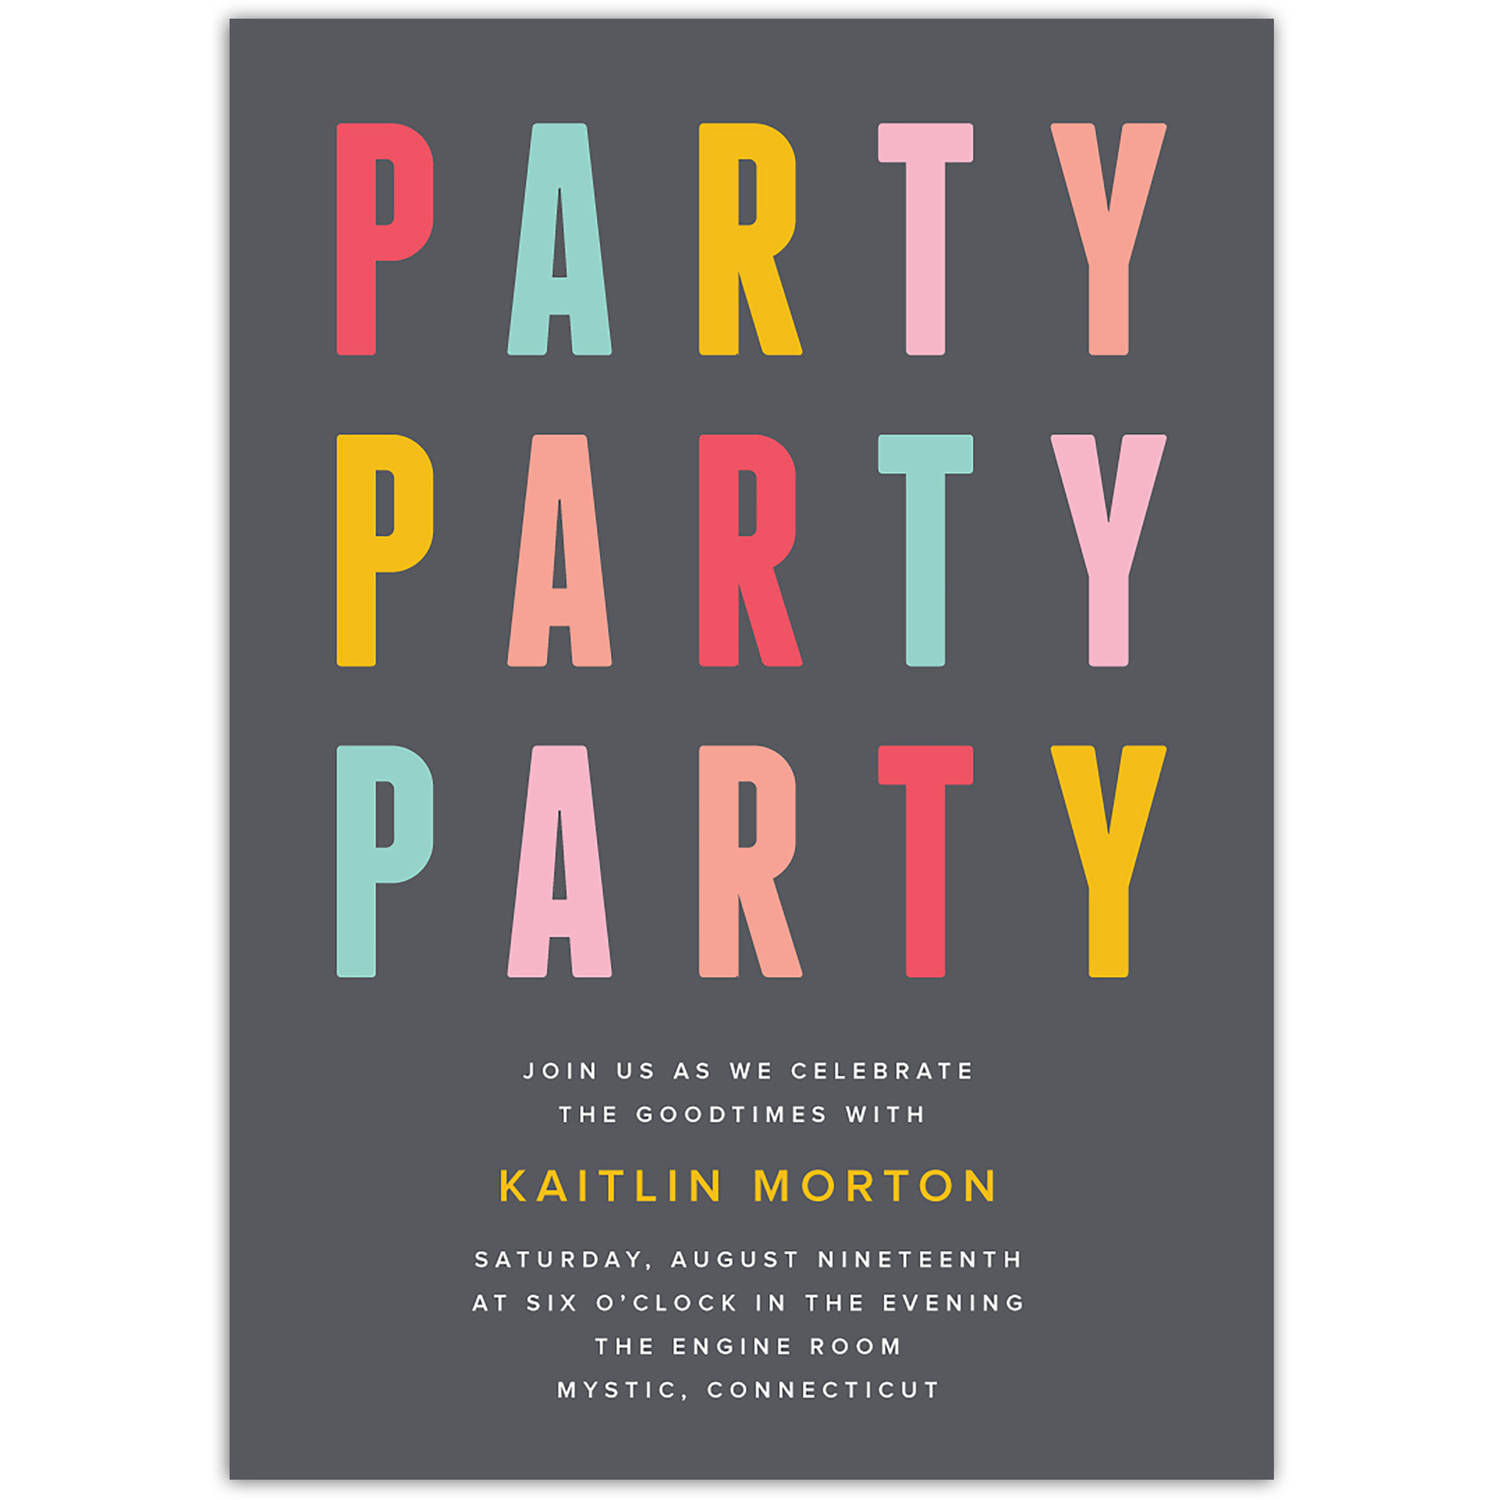 Party Party Party Party General Invitation